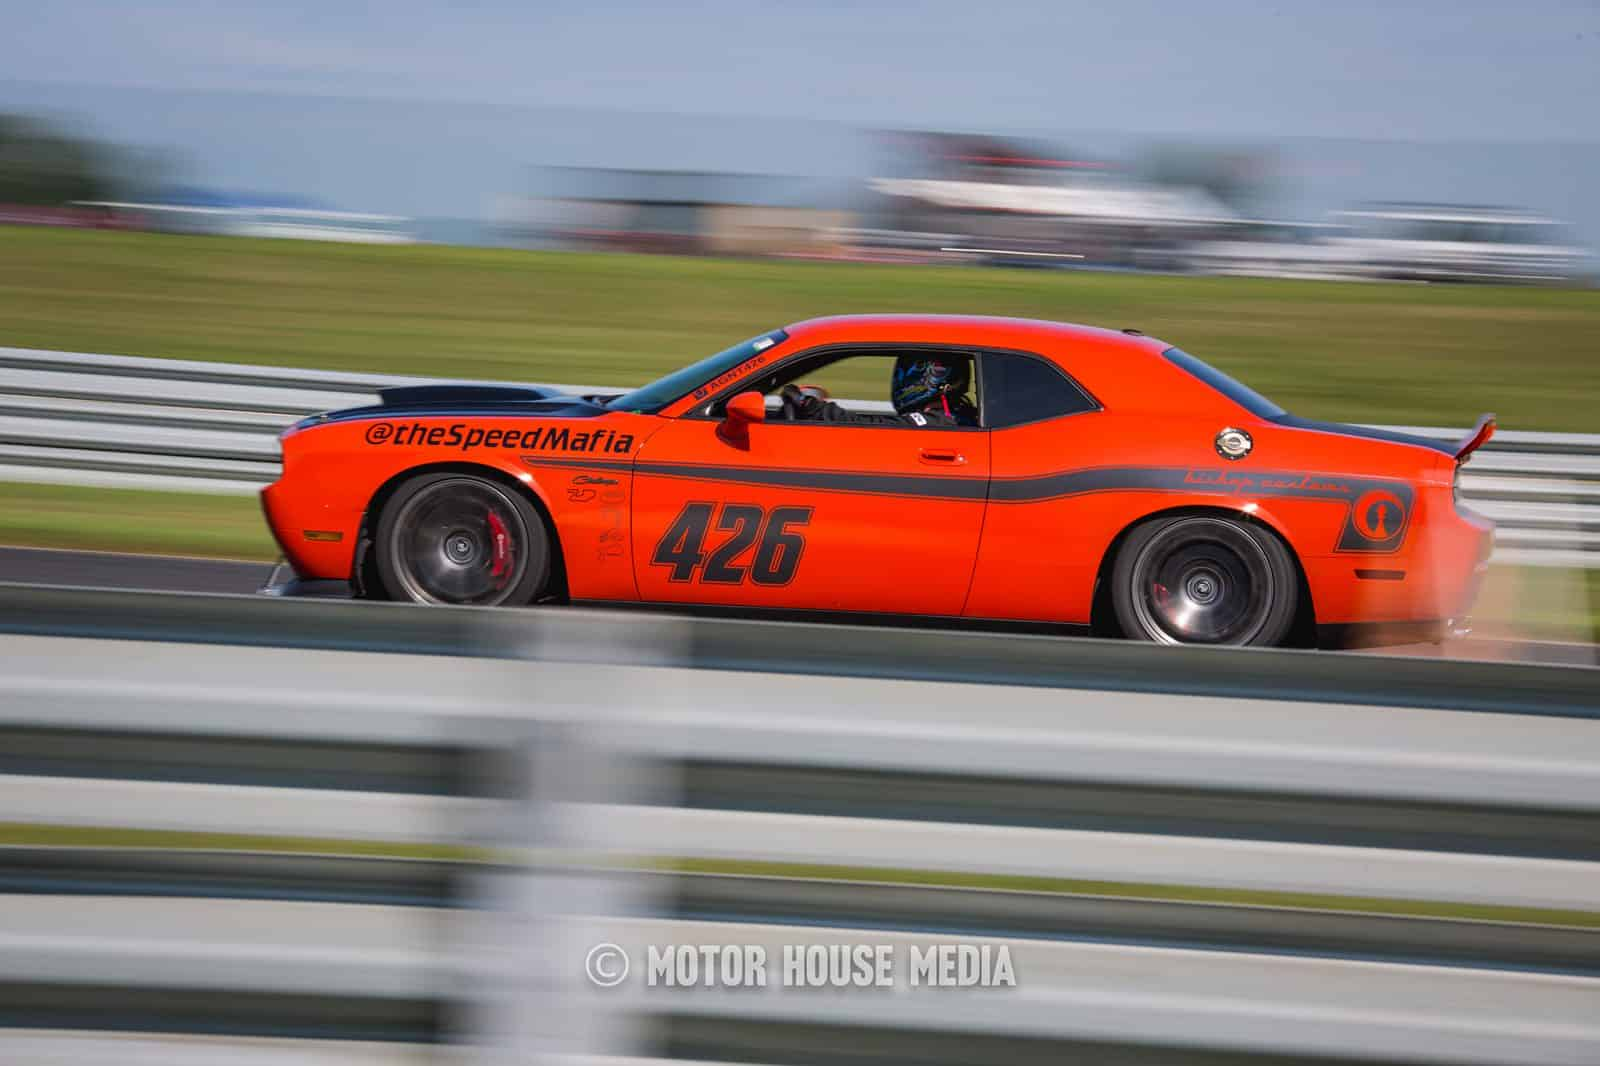 Dodge Challenger racing in the Global Time Attack